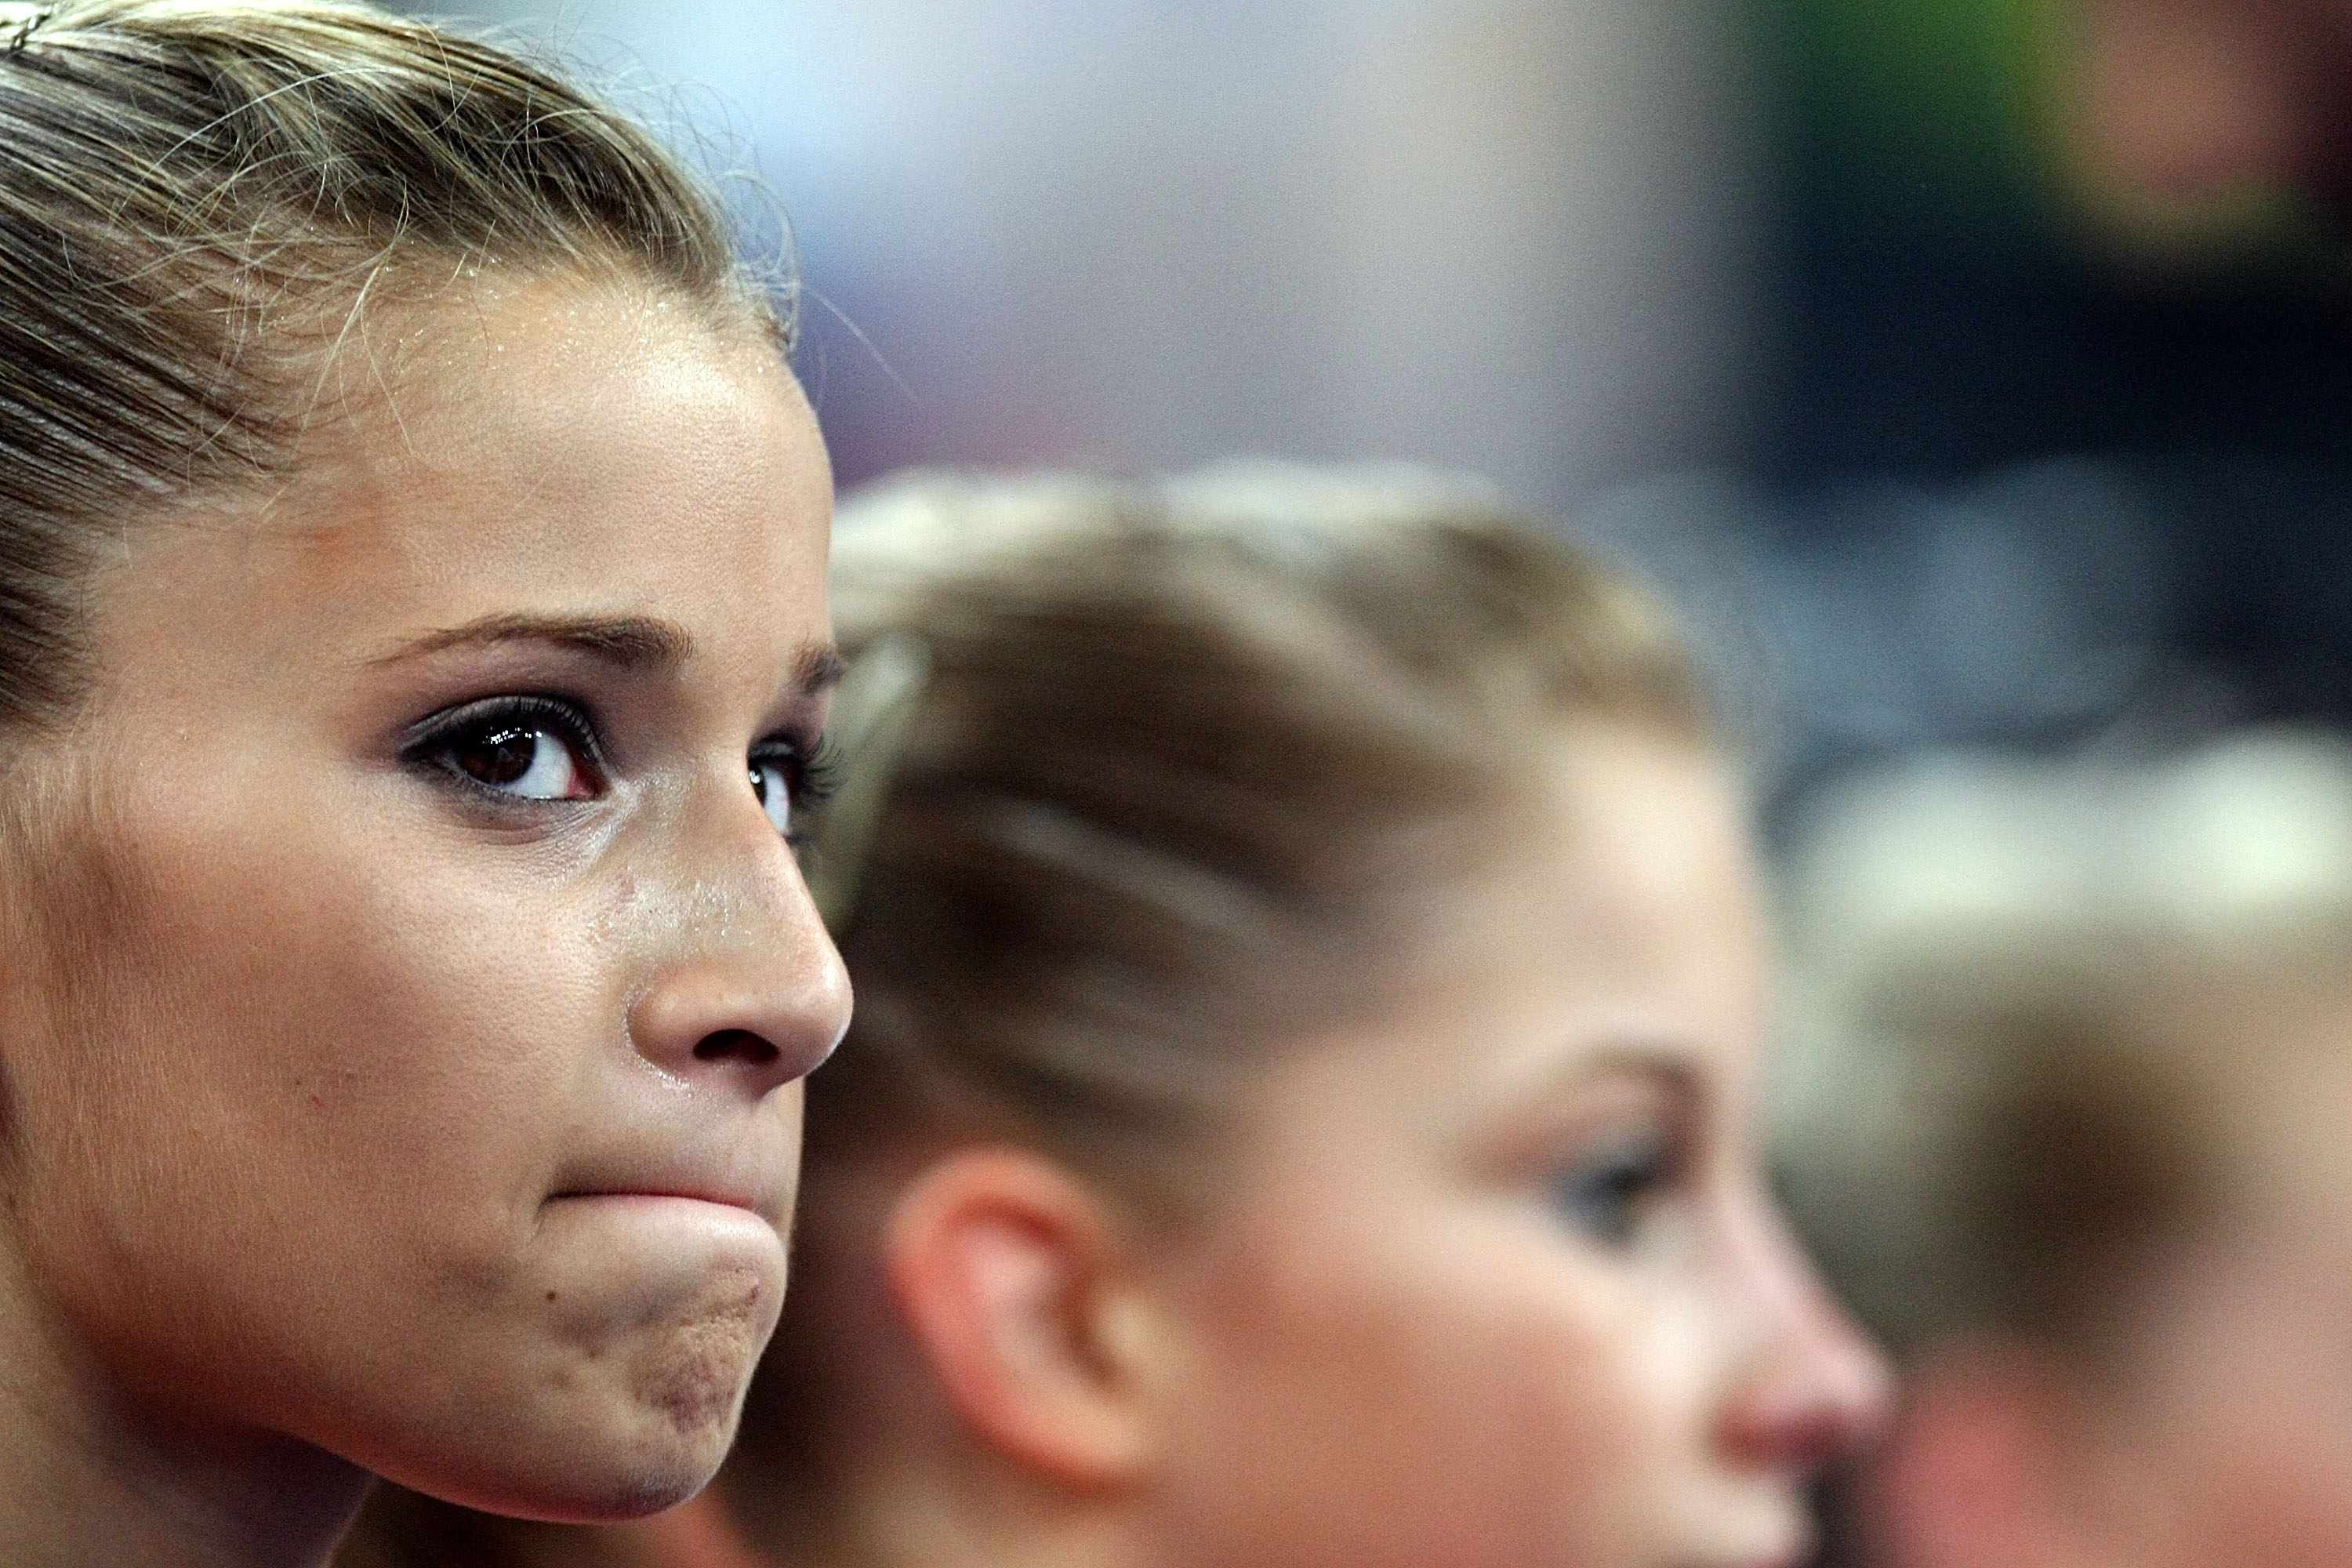 Alicia Sacramone is not happy.